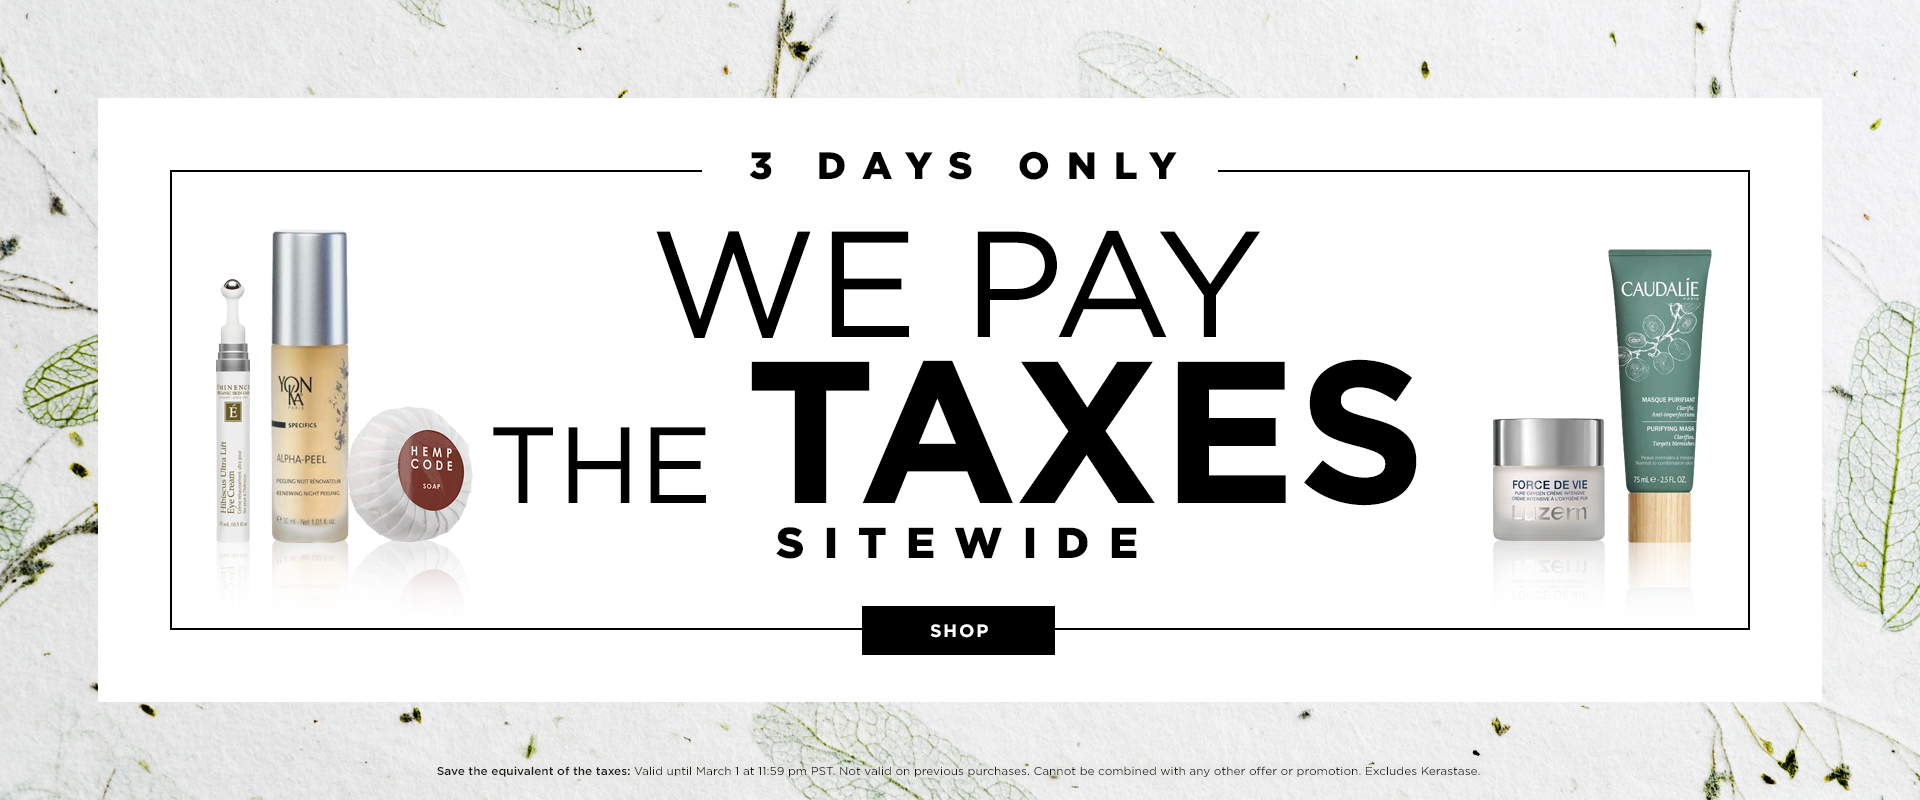 We pay the taxes! 3 days only!